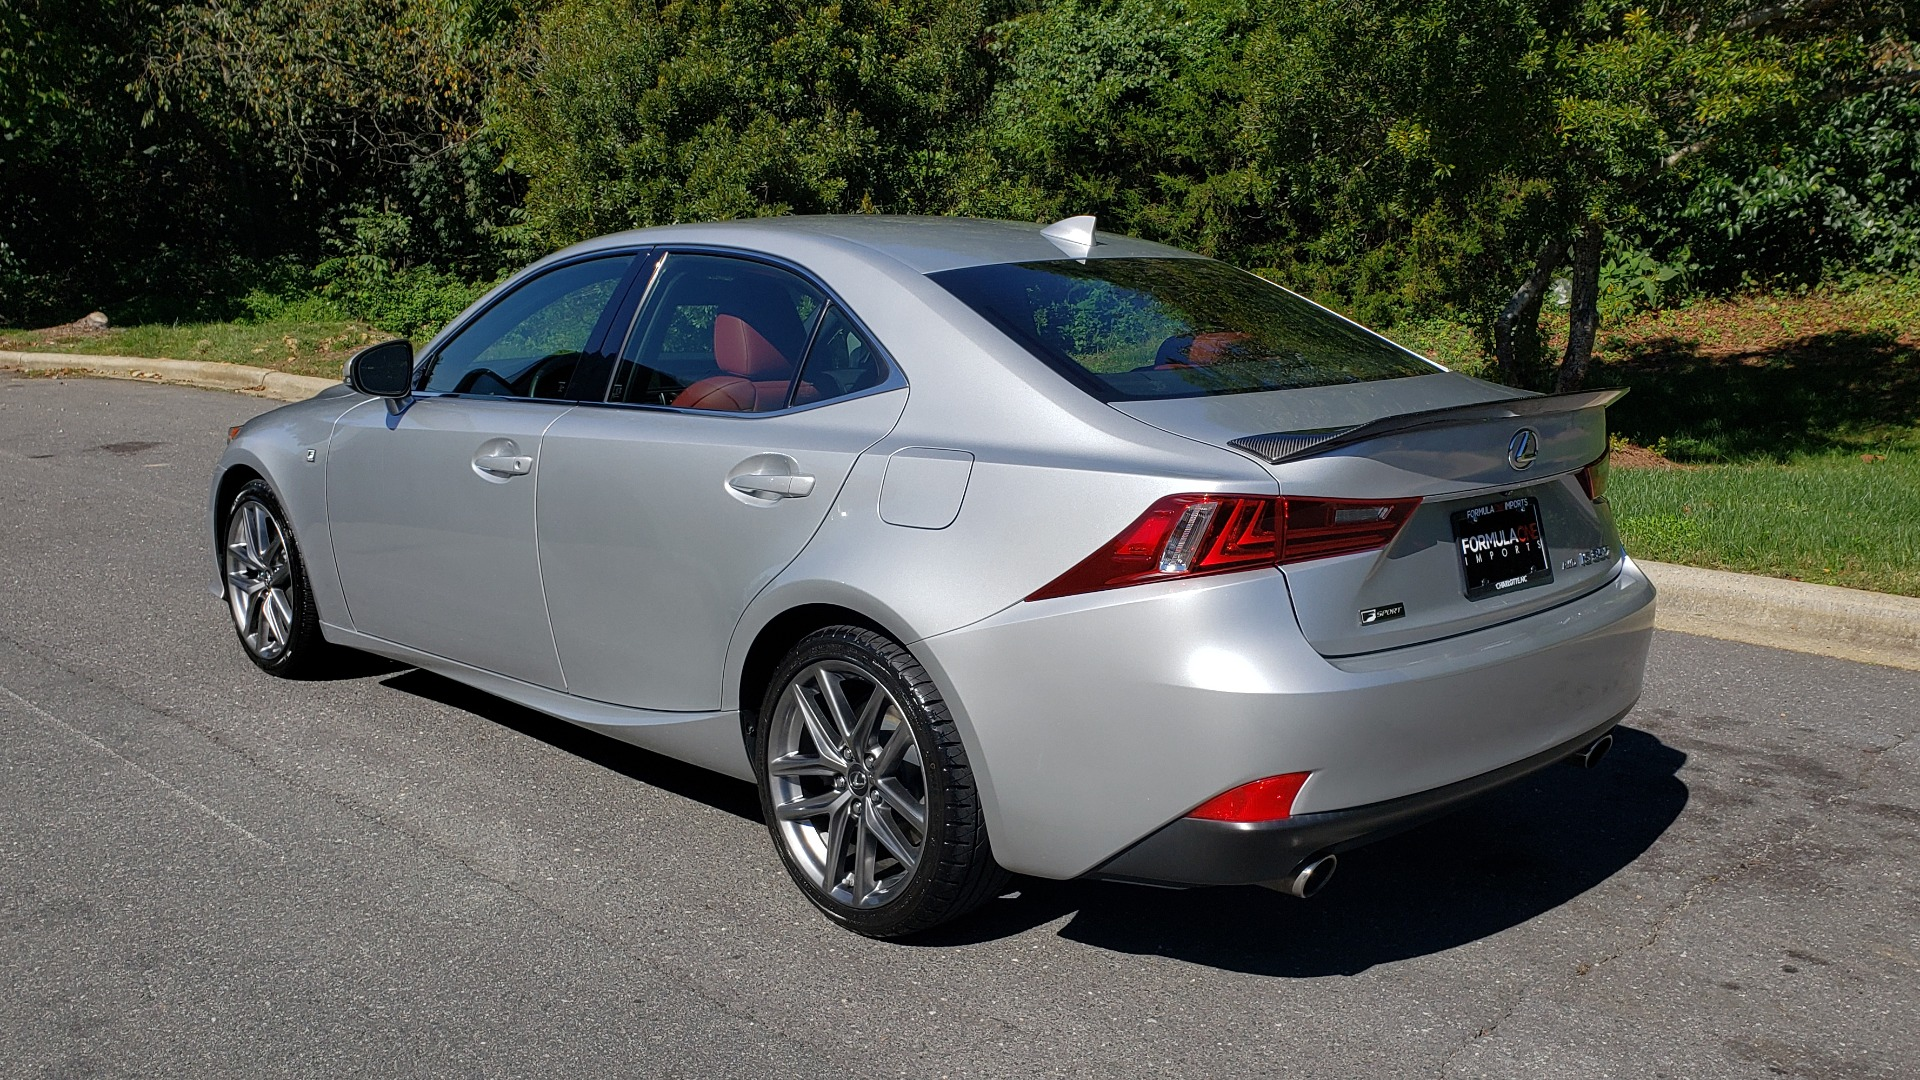 Used 2015 Lexus IS 350 F-SPORT / AWD / NAV / SUNROOF / BSM / REARVIEW for sale Sold at Formula Imports in Charlotte NC 28227 3